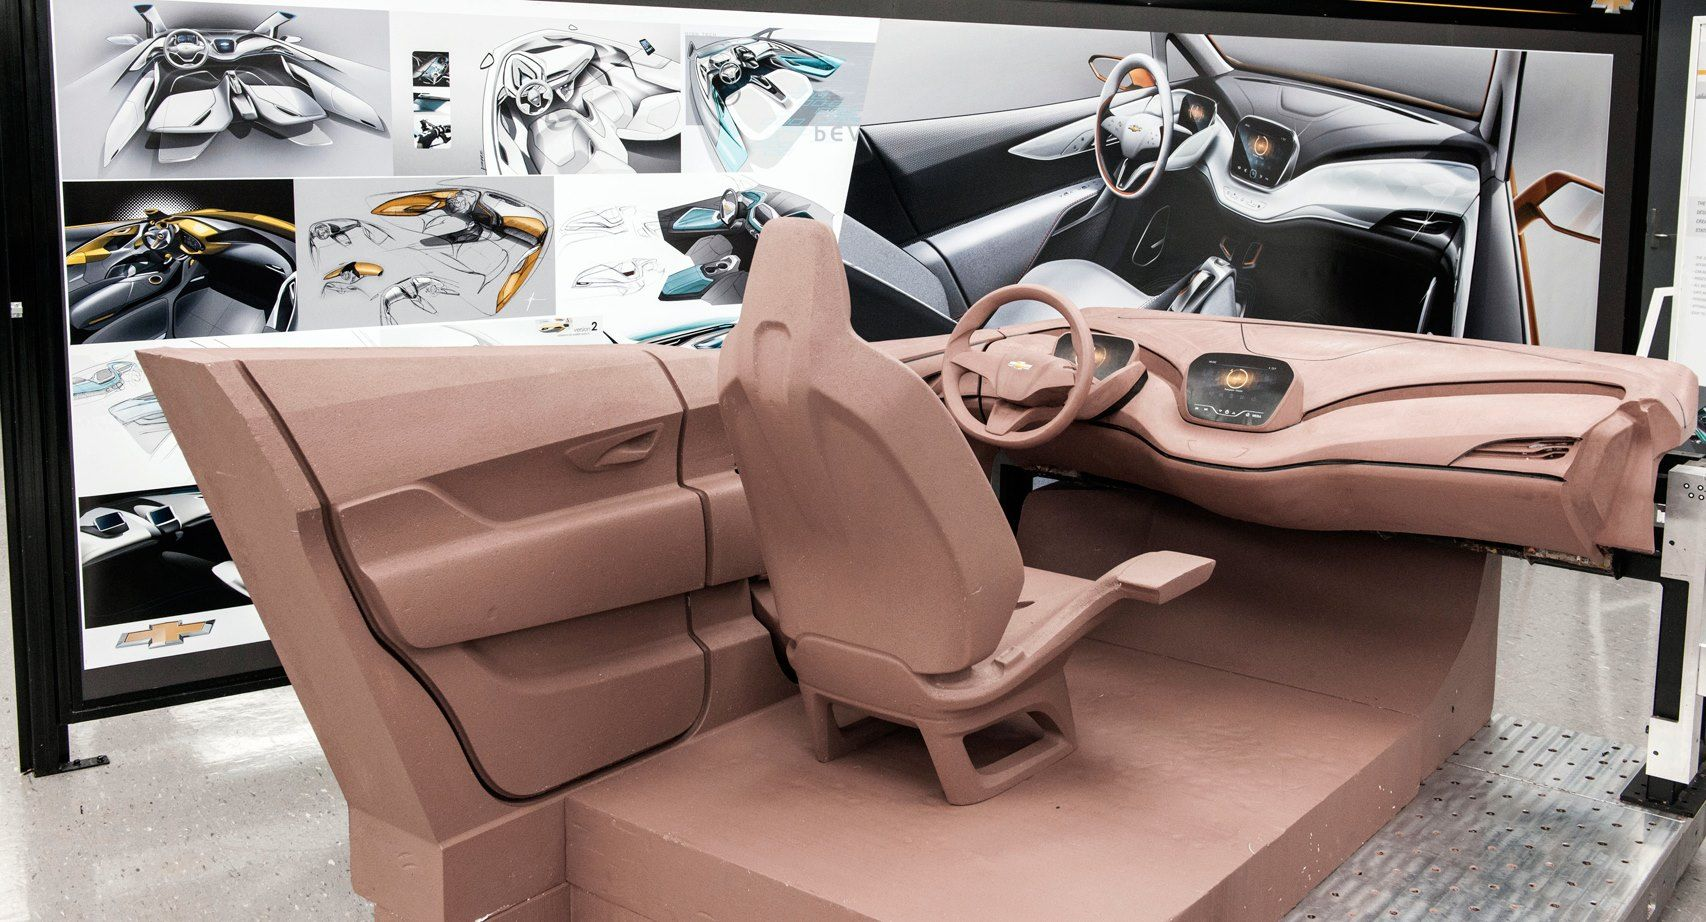 Design of car model - Chevrolet Bolt Concept Interior Clay Model Surrounded By Theme Renders In Gm S Australian Studio